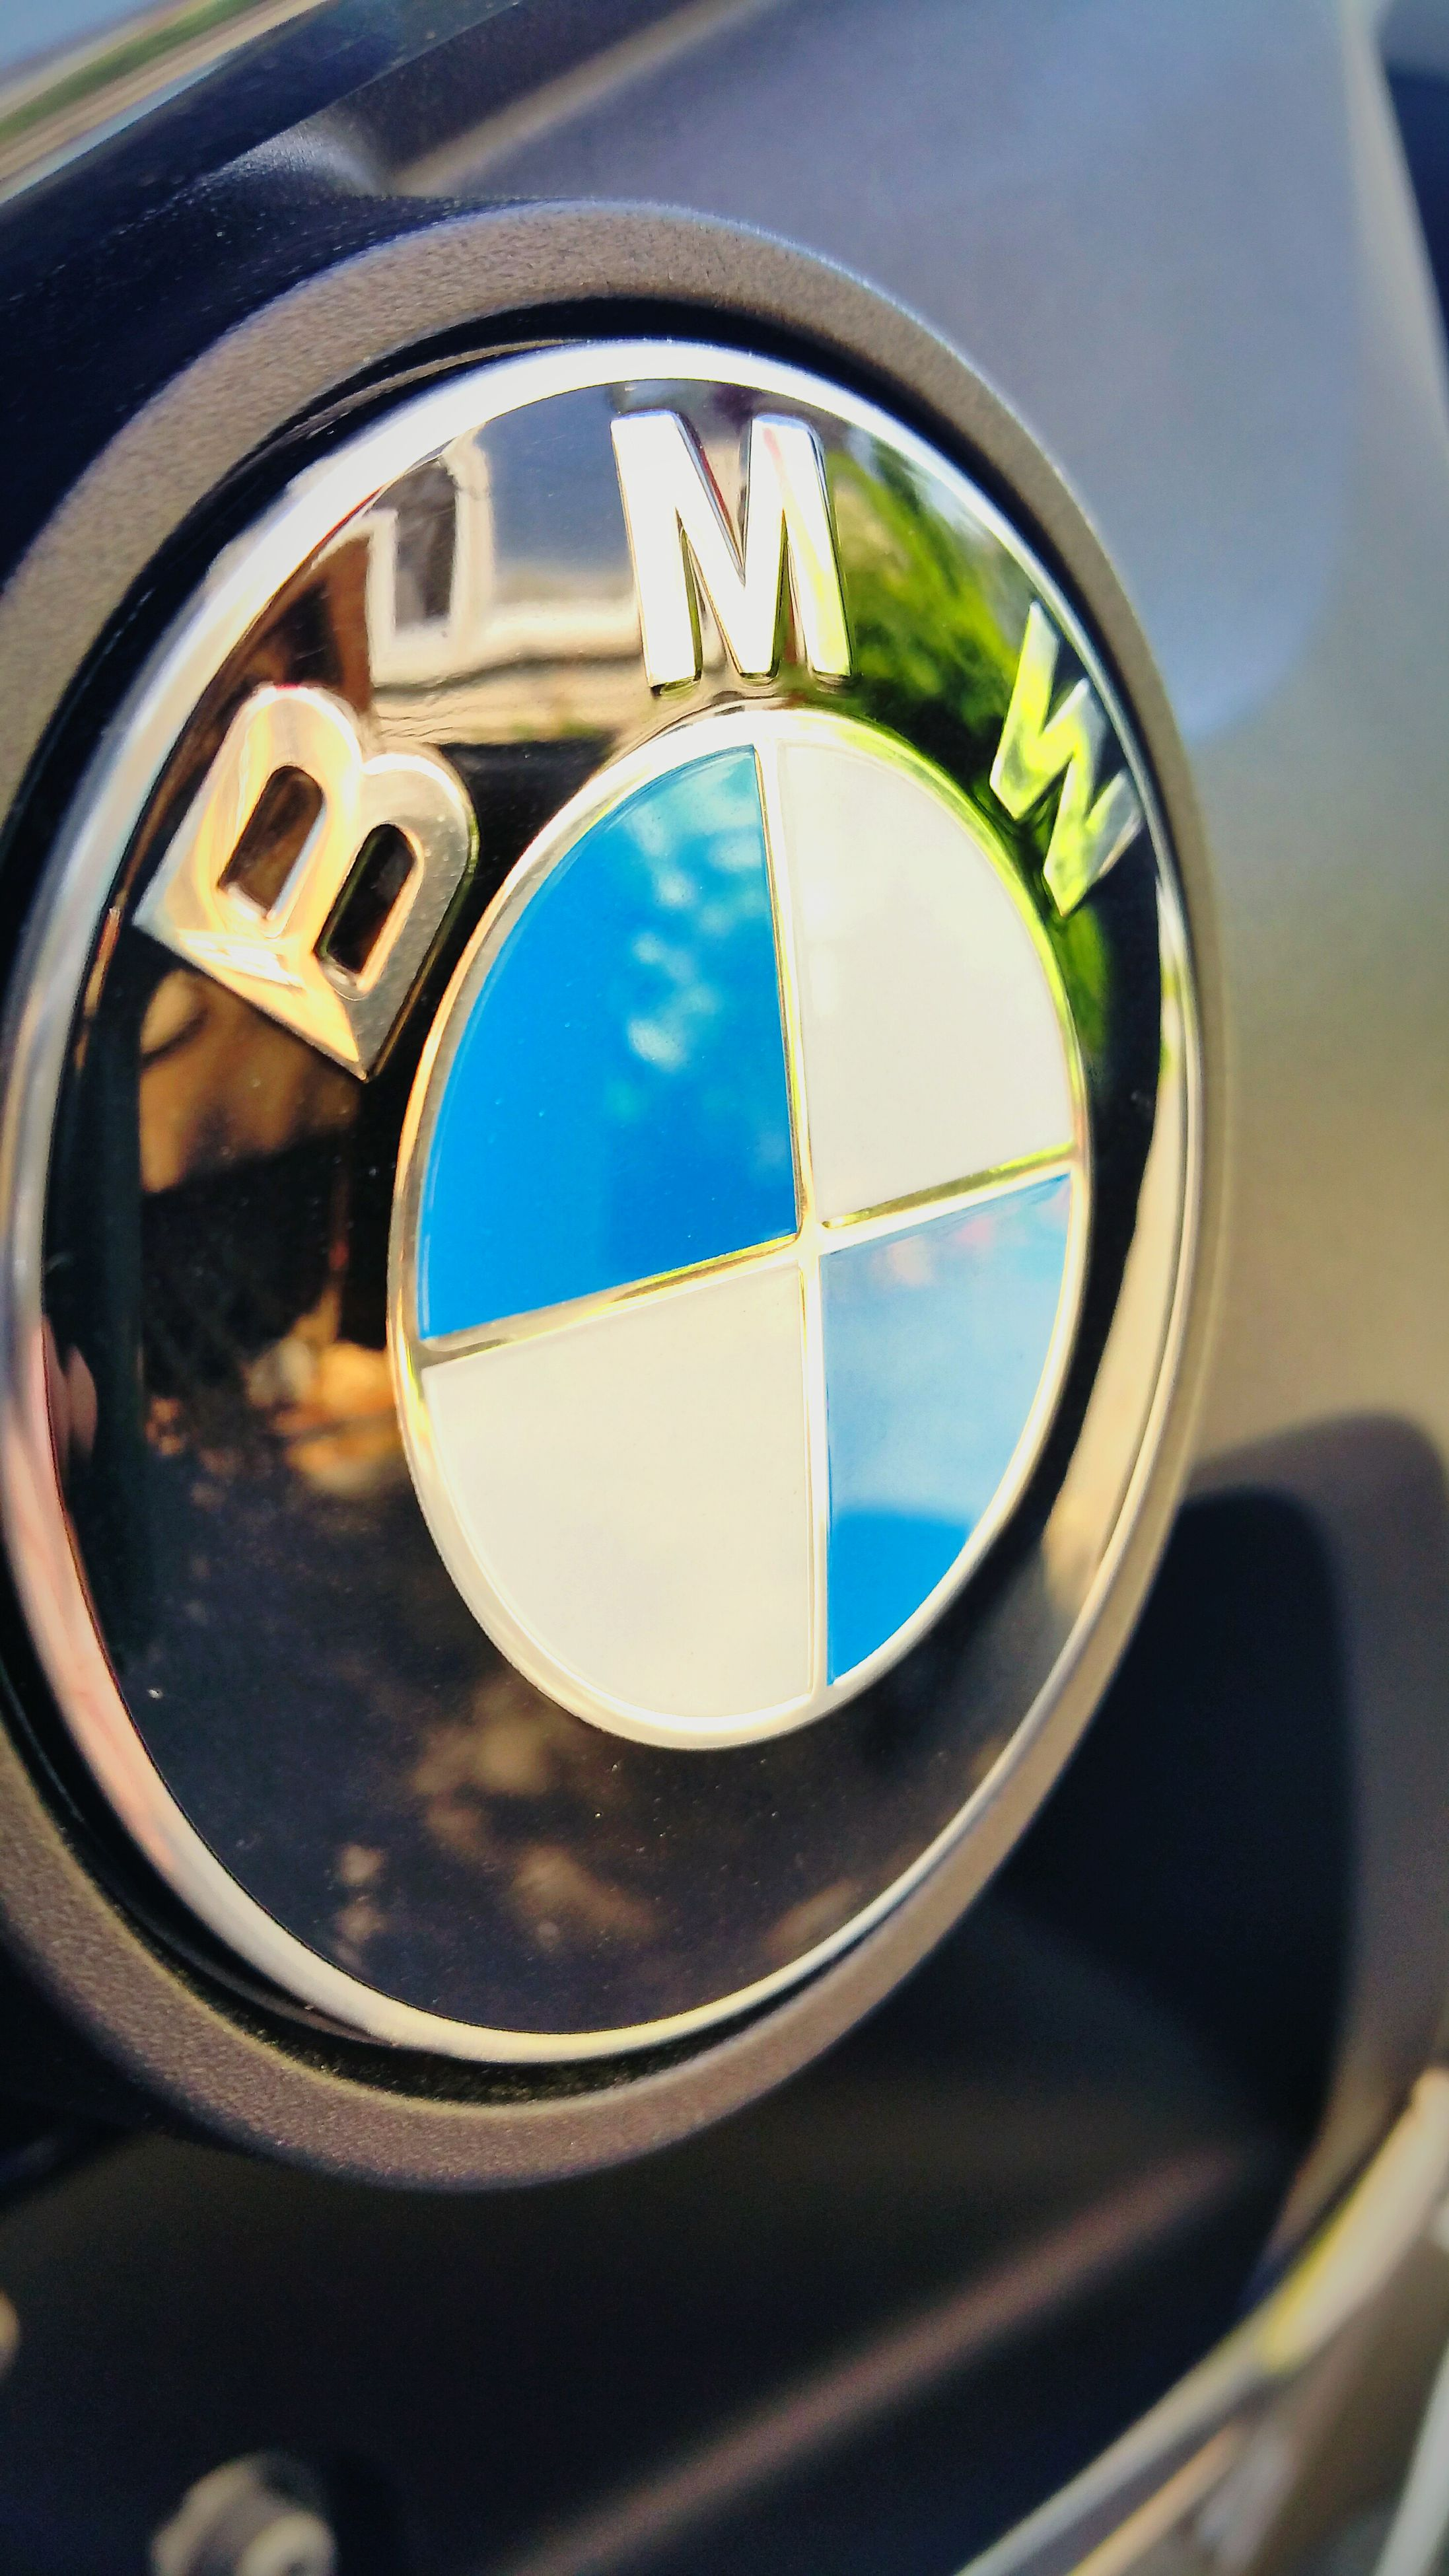 transportation, mode of transport, circle, close-up, reflection, land vehicle, car, part of, side-view mirror, sky, vehicle interior, glass - material, geometric shape, cropped, window, transparent, blue, day, no people, car interior